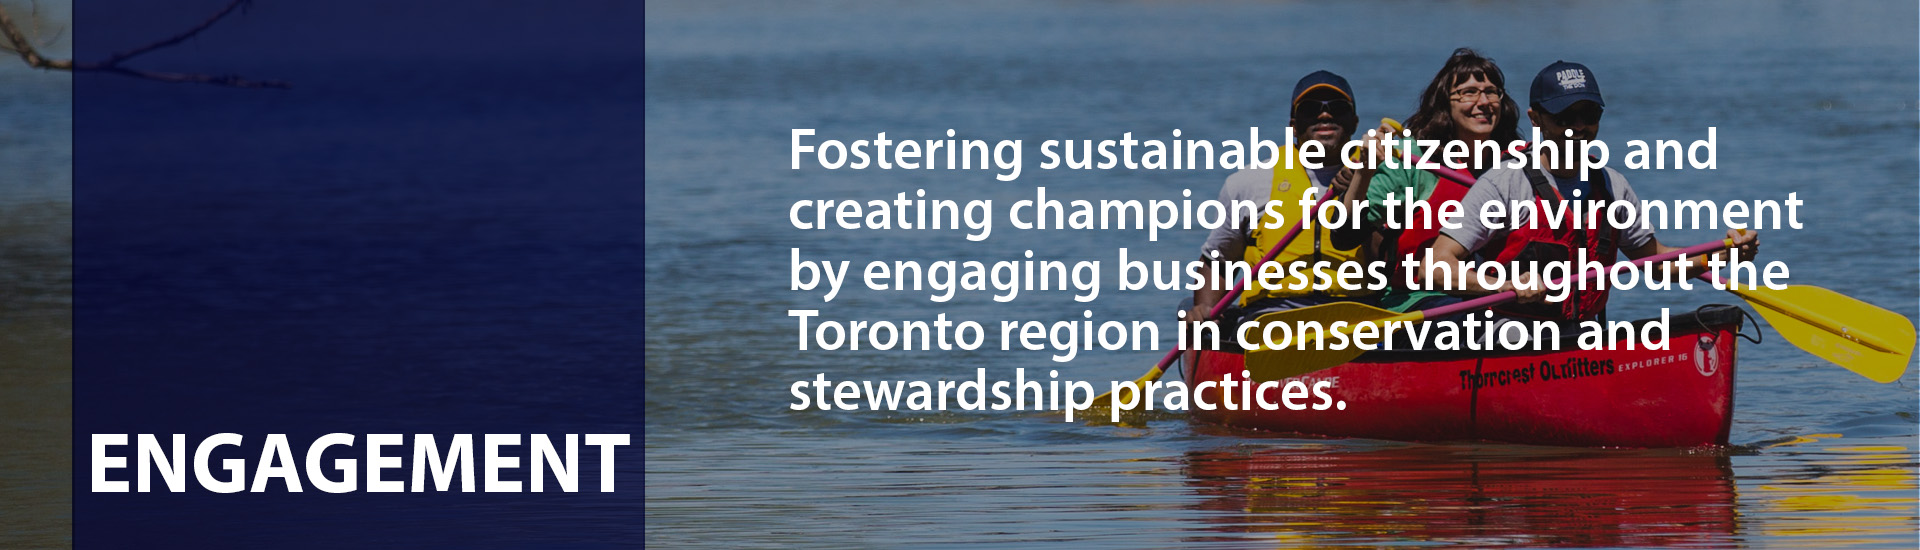 Fostering sustainable citizenship and creating champions for the environment by engaging businesses throughout the Toronto region in conservation and stewardship practices